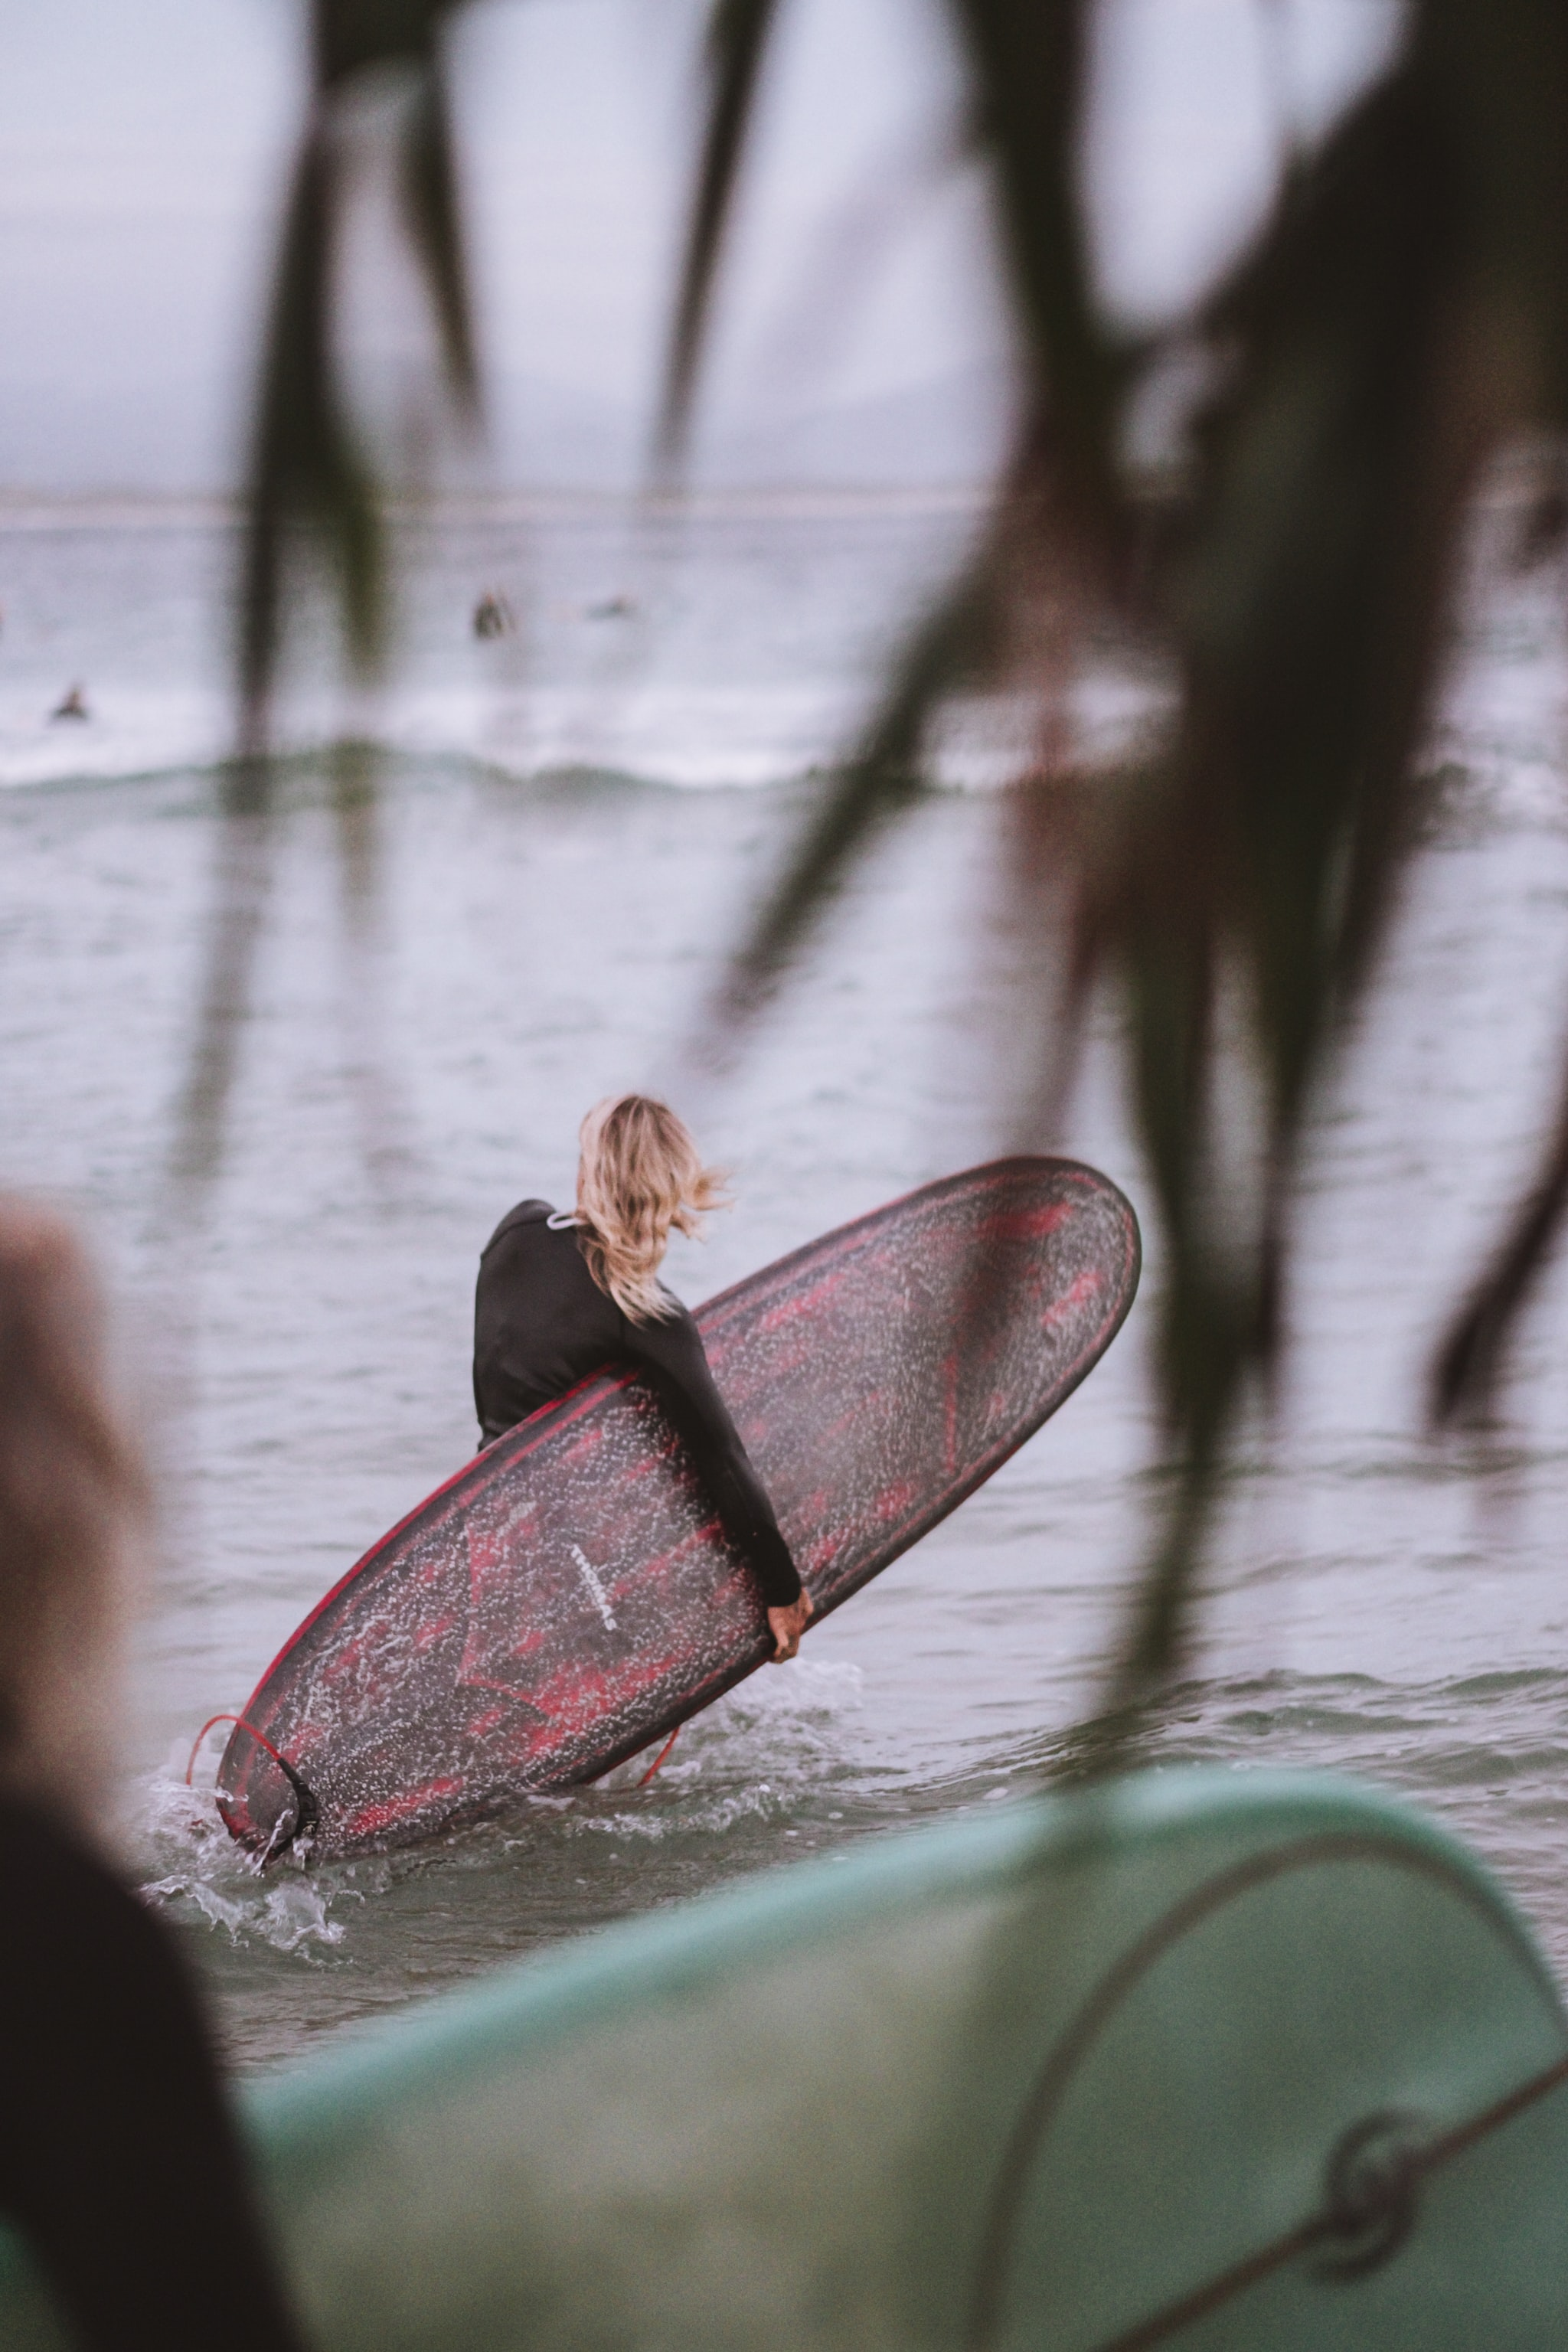 woman carrying pink surfboard on body of water